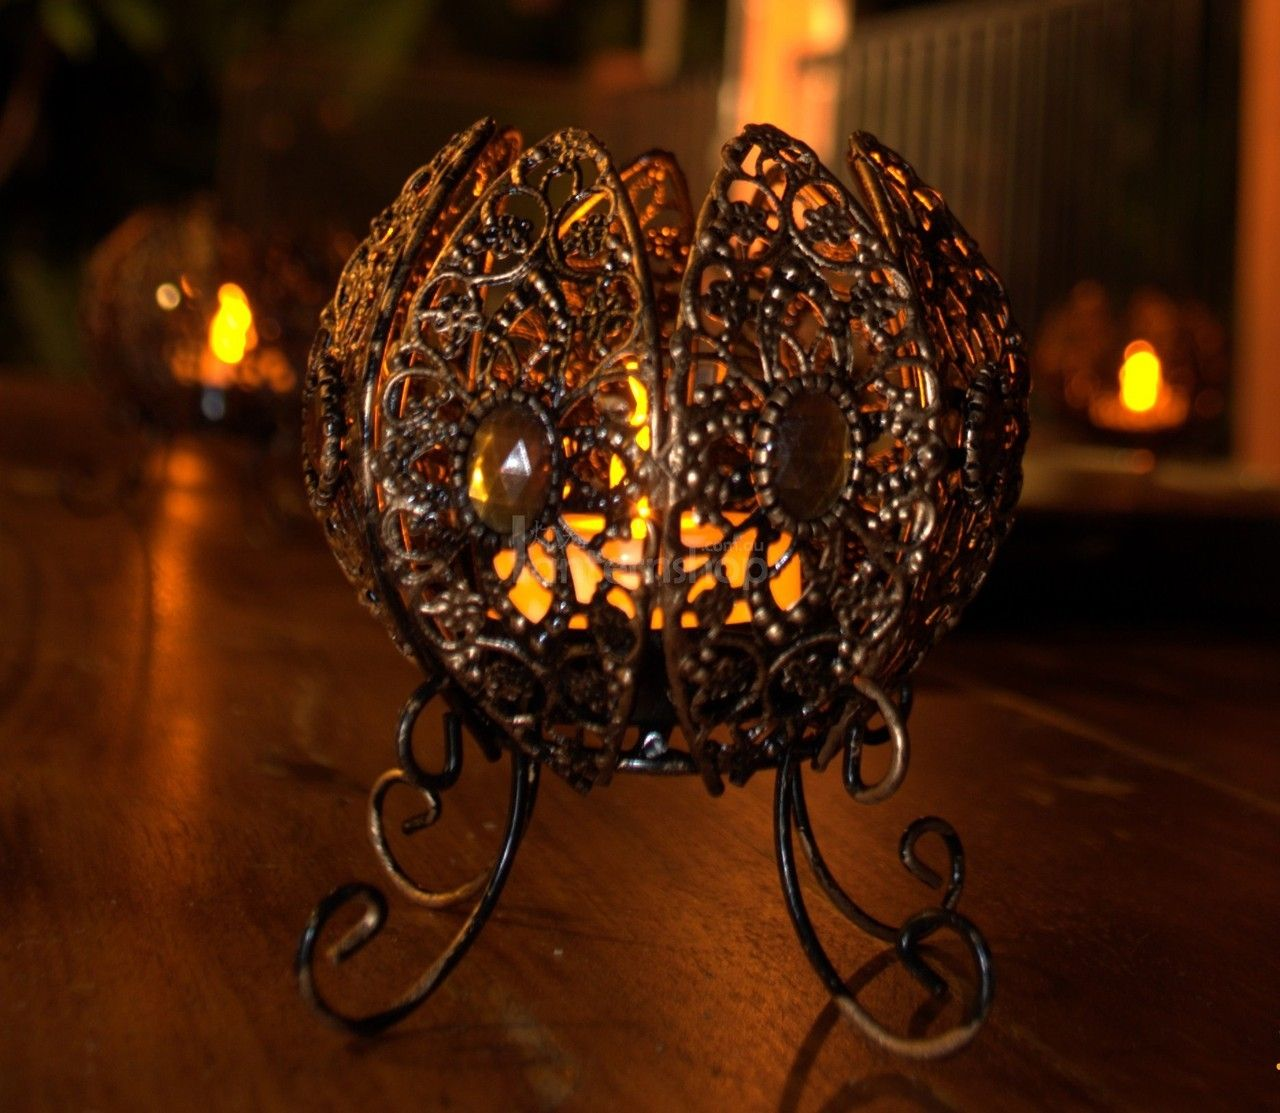 Party decoration ideas moroccan metal lantern - Moroccan Table Lantern Would Look Amazing For A Classy Halloween Decoration Even